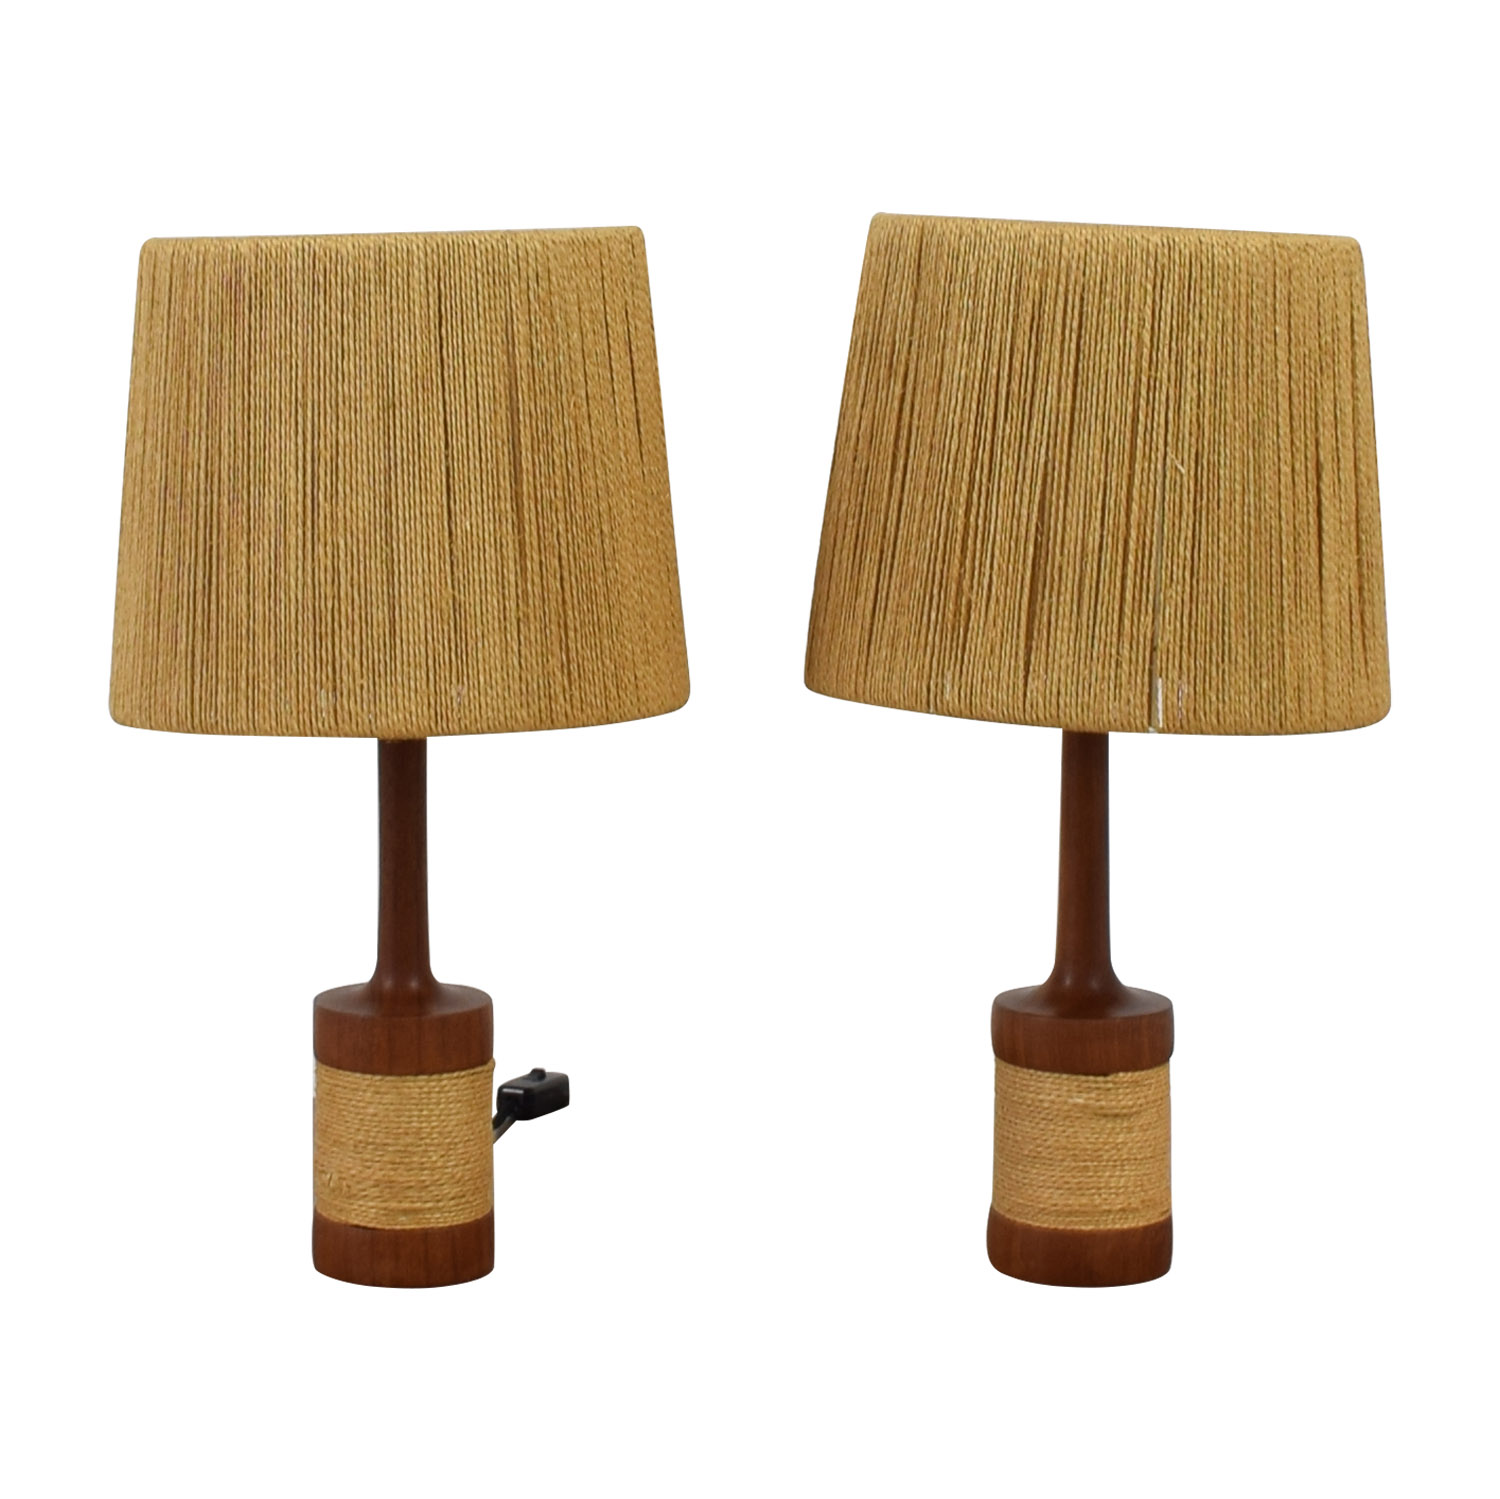 Sisal and Wood Table Lamps